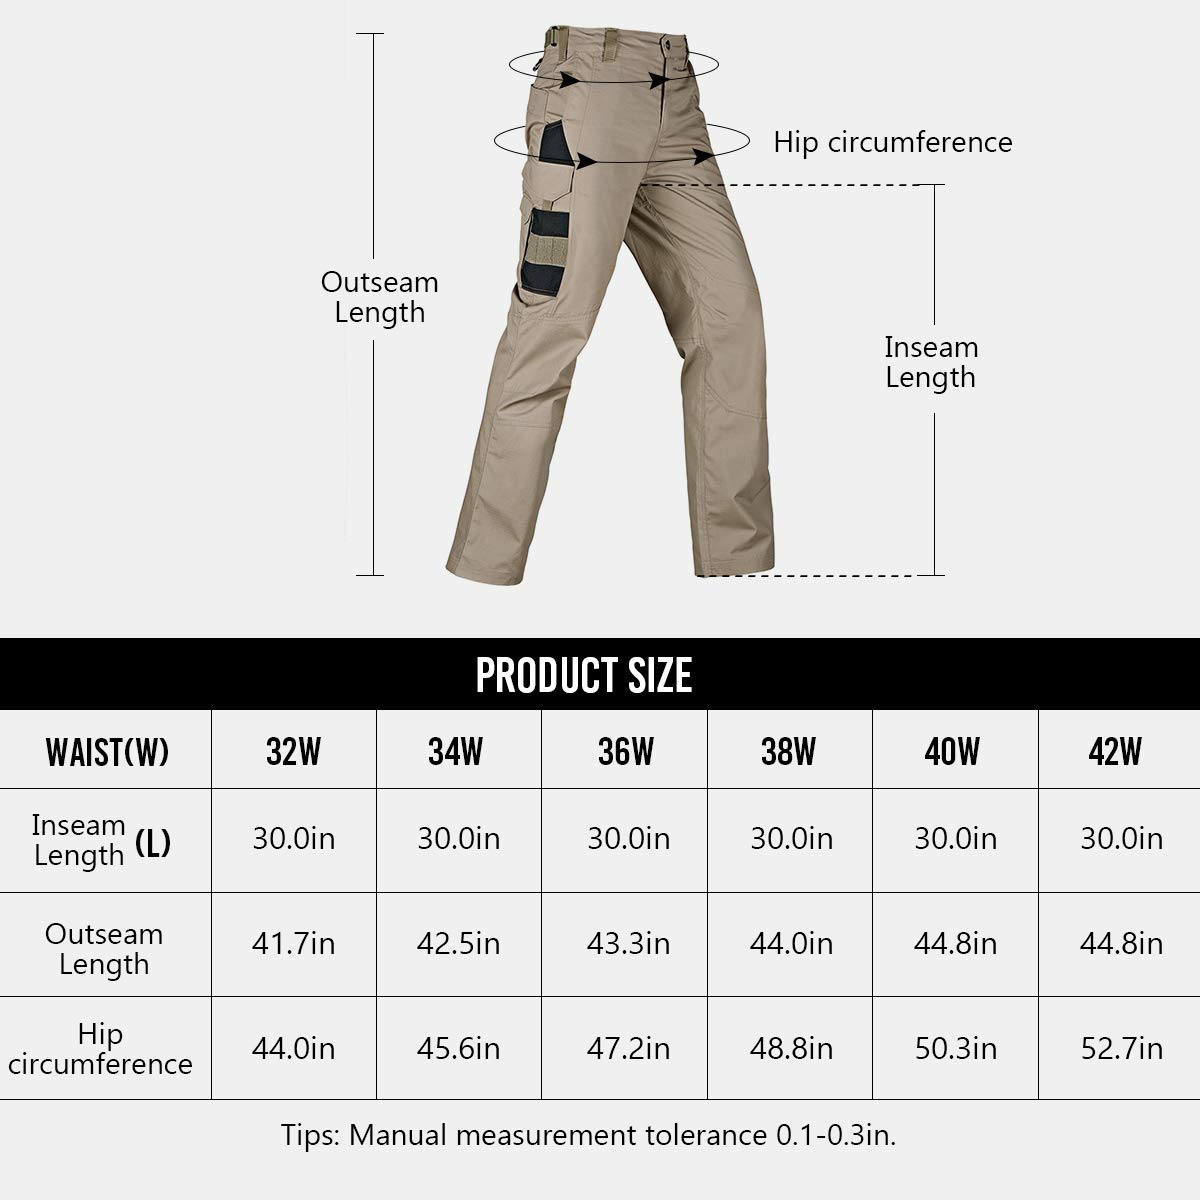 FREE SOLDIER Men/'s Tactical Pants Lightweight Water-Resistant Durable Cargo Pants Outdoor Hiking Fishing Duty Pants Multi-Pockets Pants